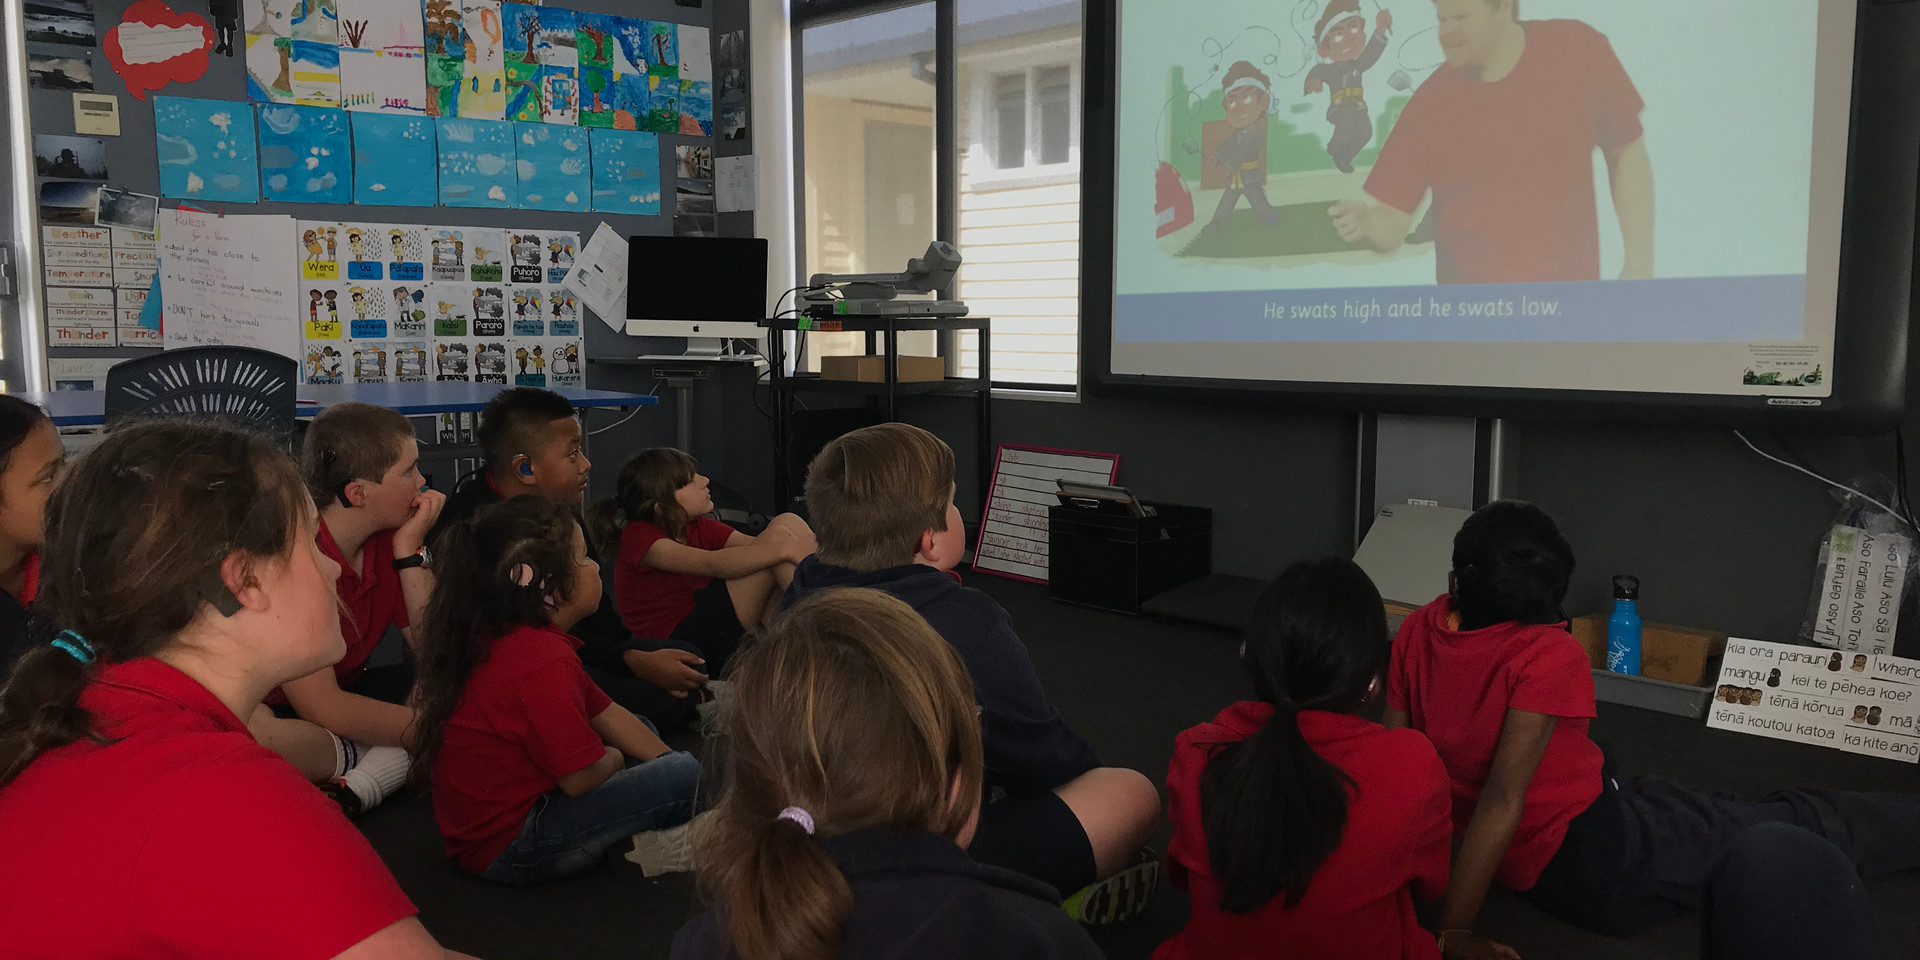 Deaf Students watching the Sign Language